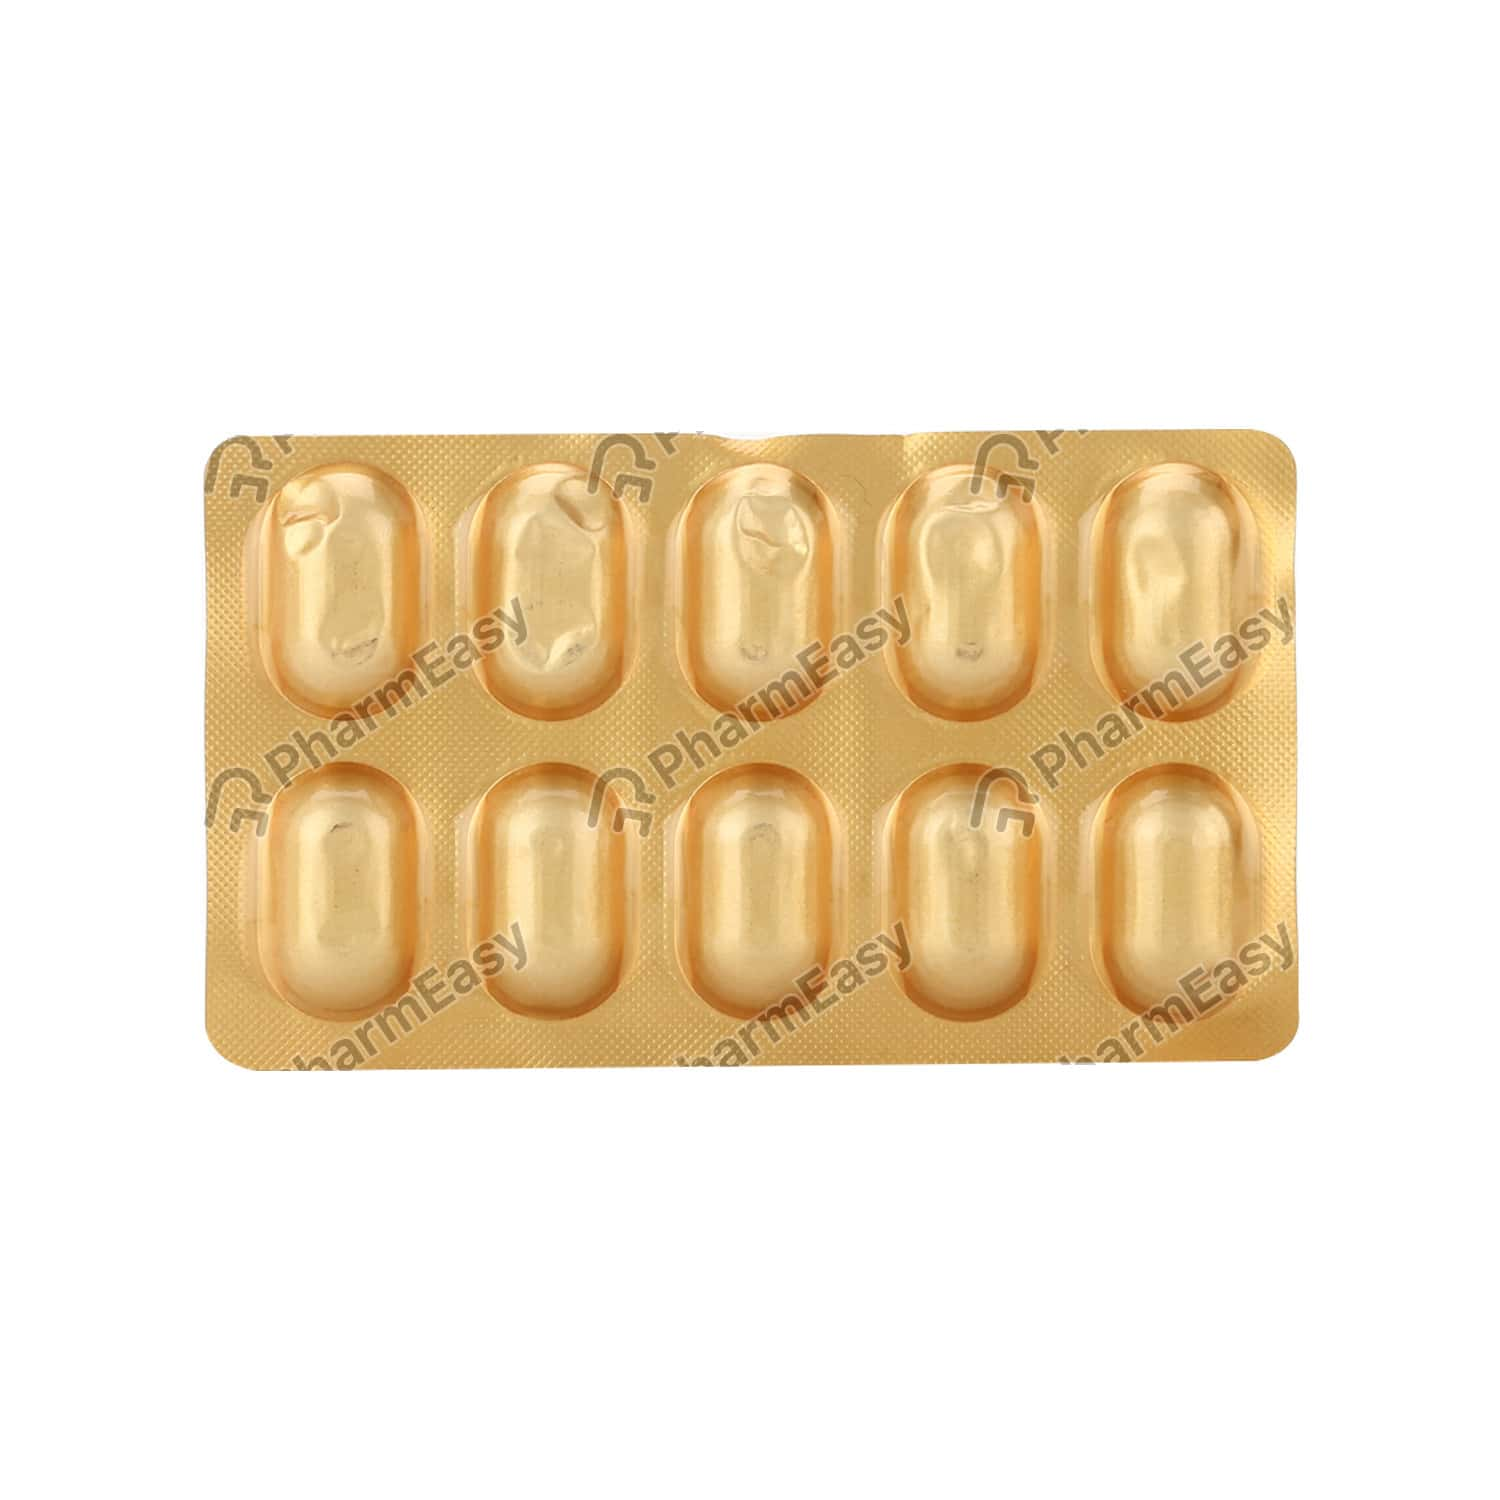 Rosurica 20mg Tablet